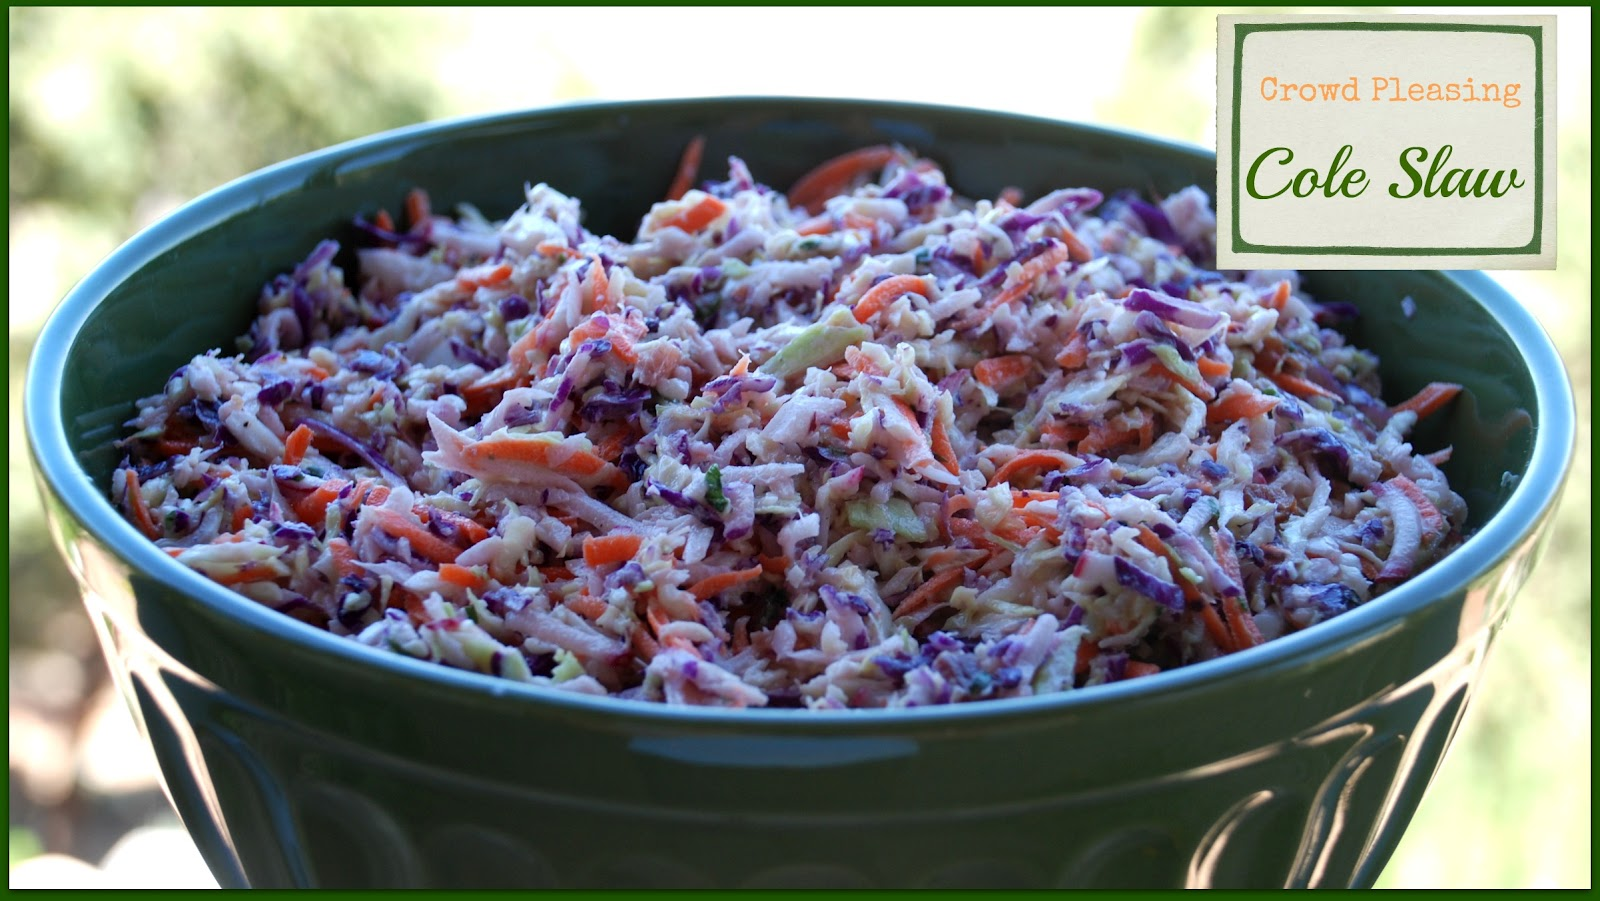 Pot-luck Coleslaw